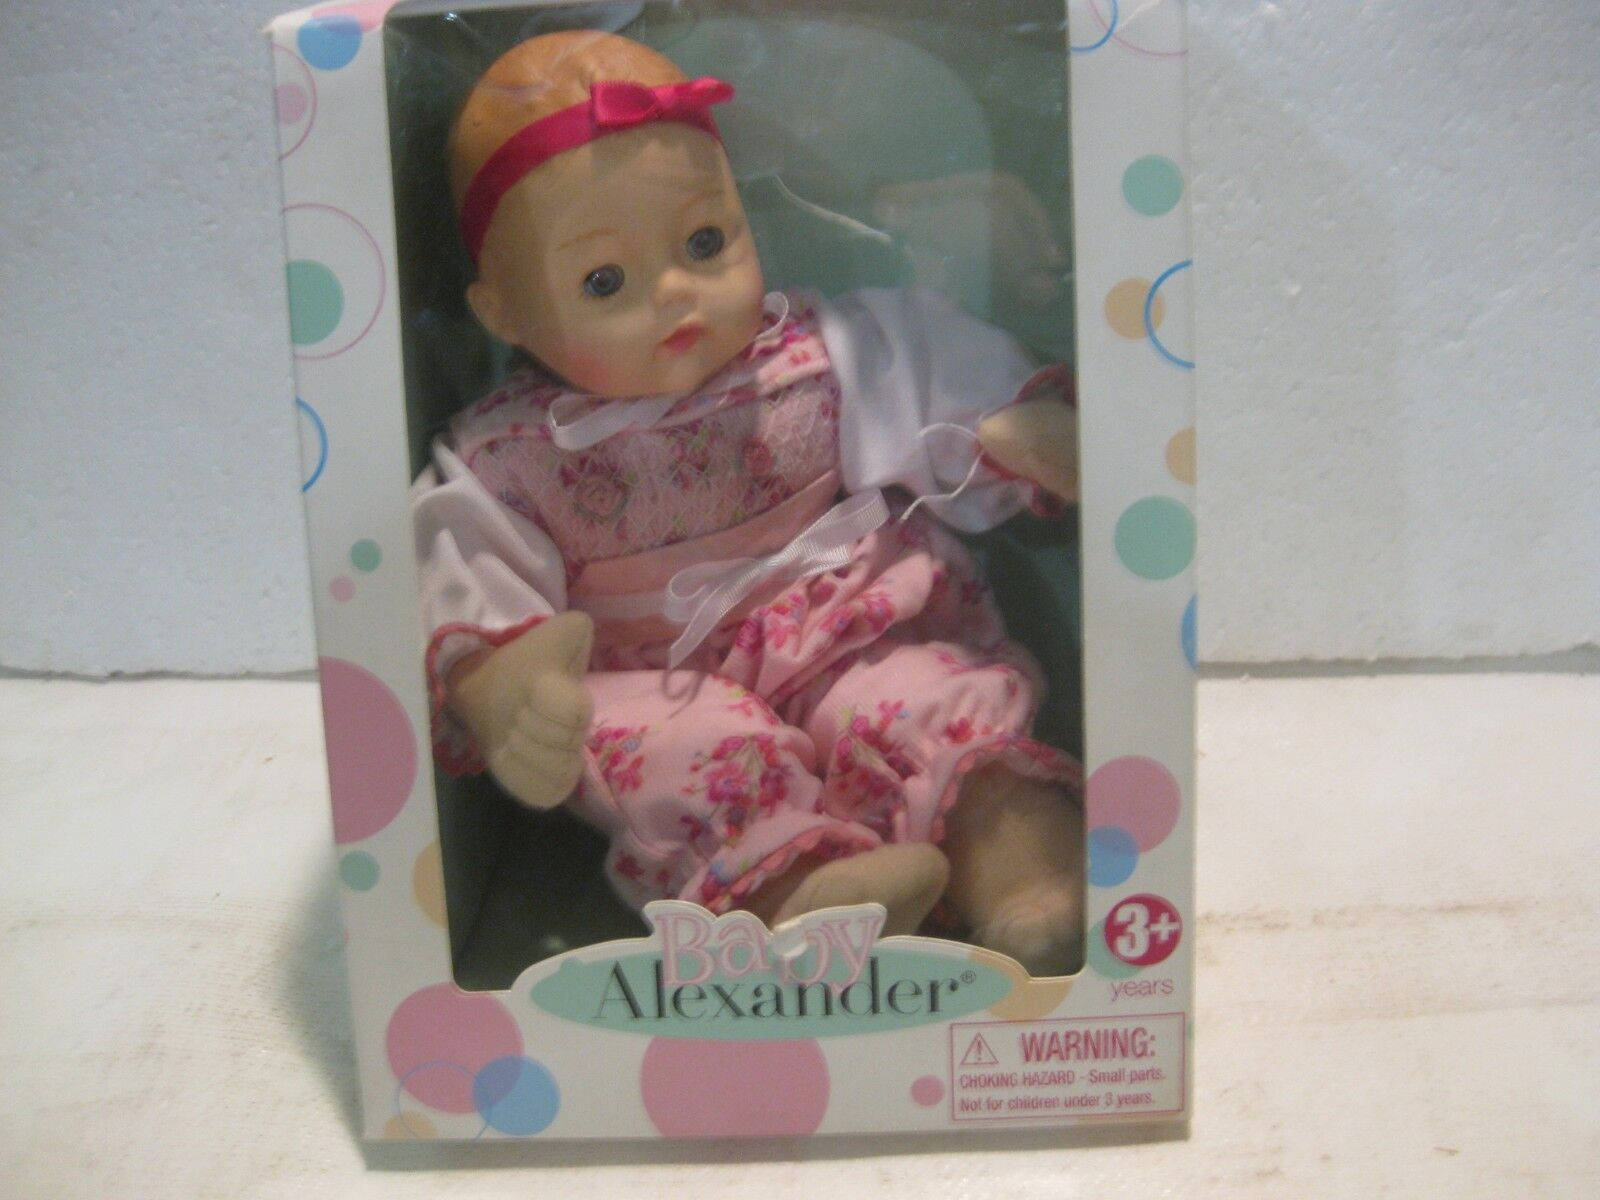 Baby Dolls & Accessories Dolls Clothing & Accessories Dolls & Bears